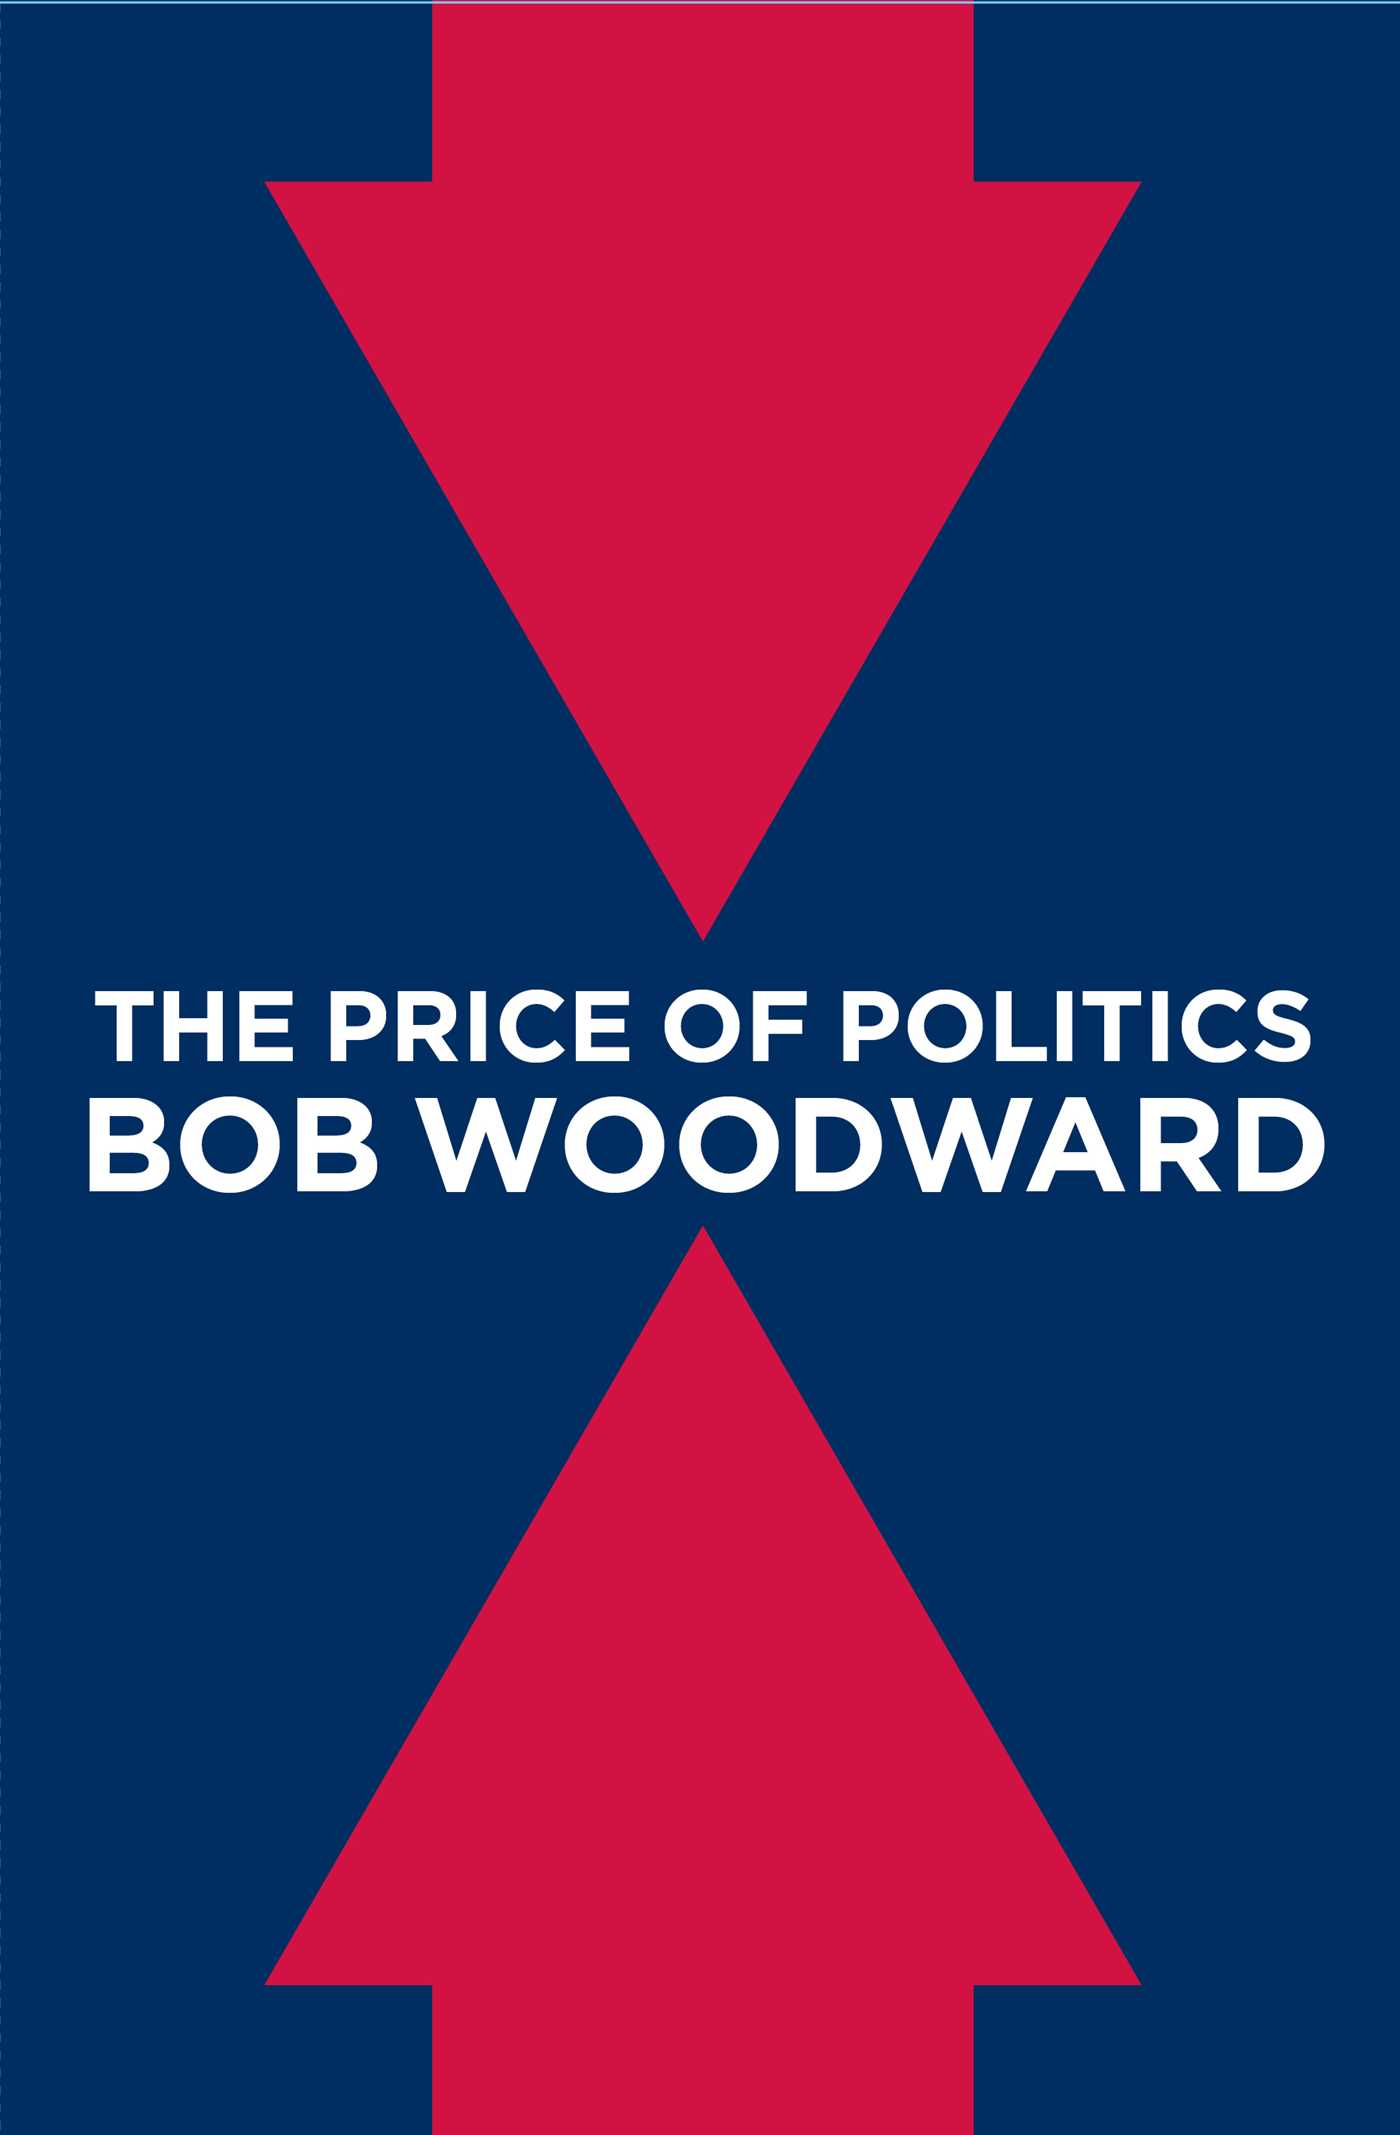 The price of politics 9781451651126 hr